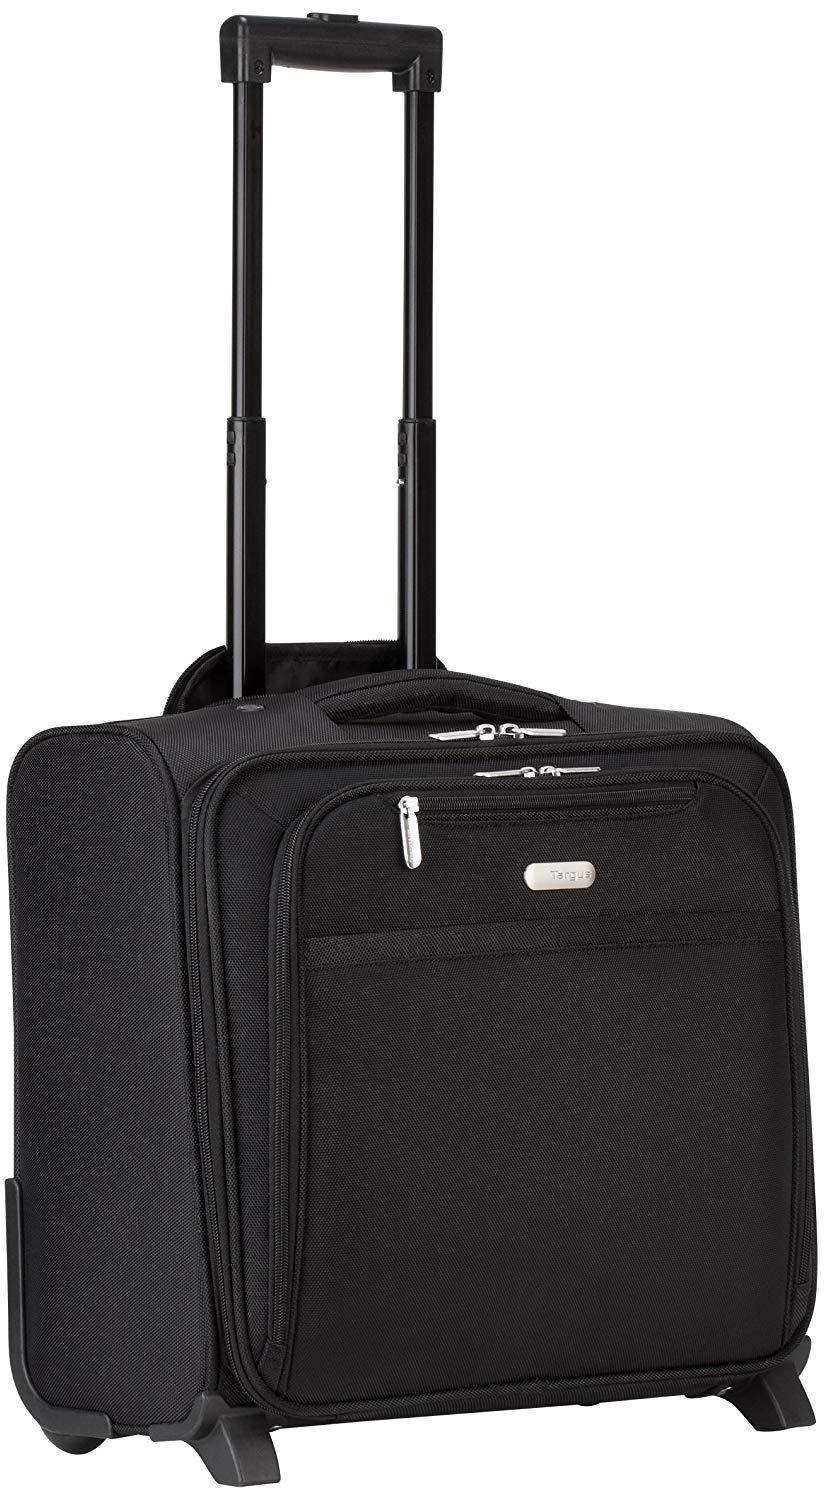 Targus 15.6-inch Rolling Laptop and Overnighter Case zoom image